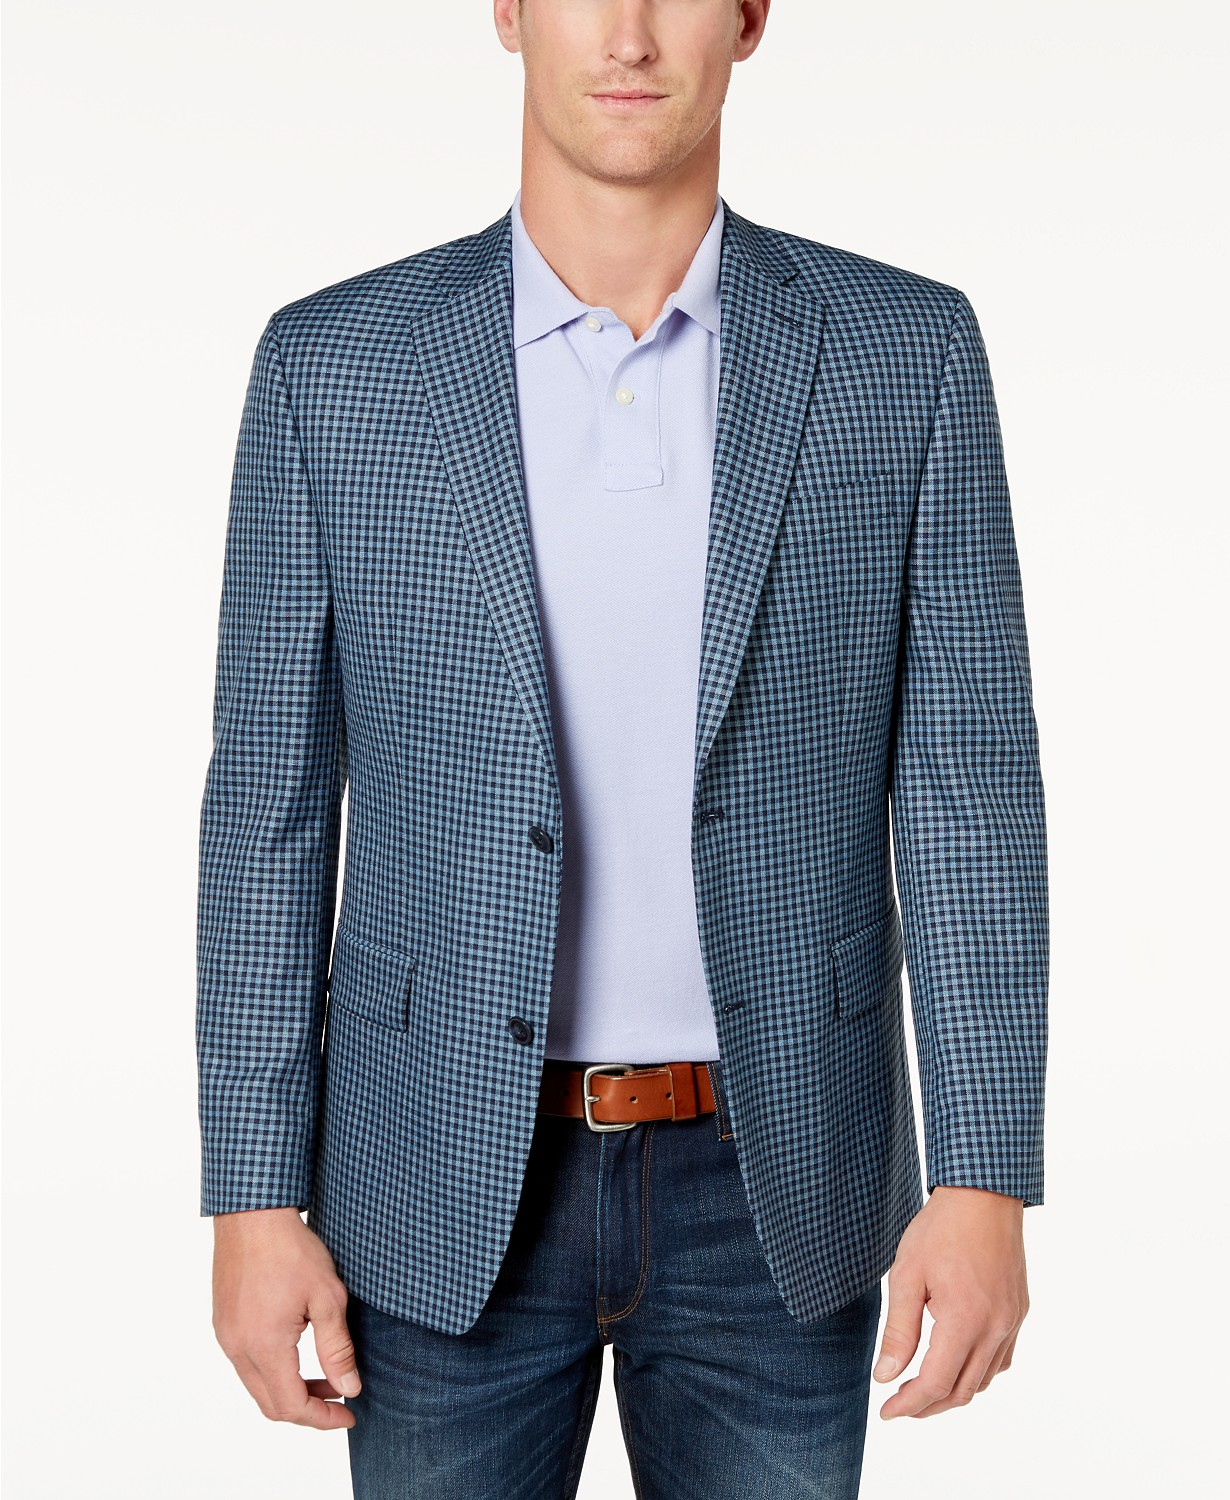 Michael Kors Mens Classic-Fit Blue Check Sport Coat